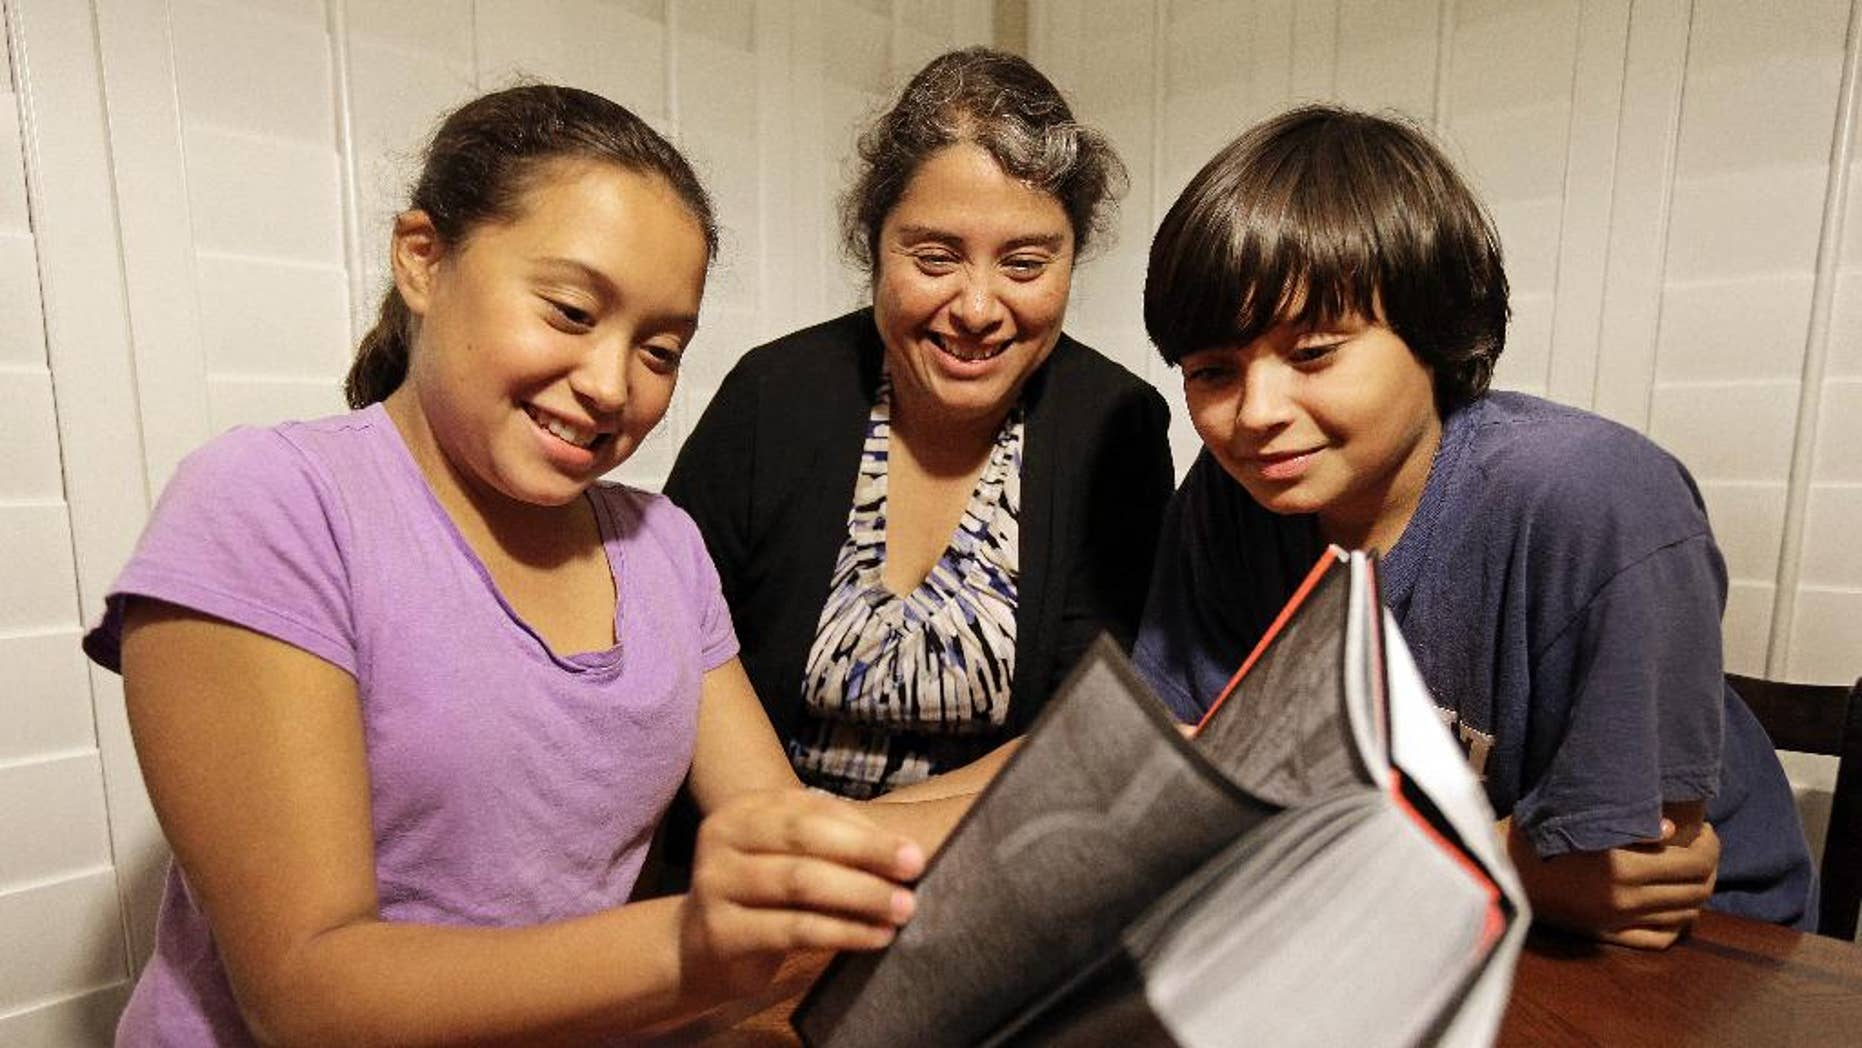 In this Nov. 10, 2014 photo, Rosaisela Rodriguez, center, reads with her children Isabel Gutierrez, left, and Rafael Gutierrez, at their home in Pleasant Hill, Calif. Rodriguez deliberately didn't declare that her twin son and daughter knew Spanish when she enrolled them in school, adding that most 5-year-olds are language learners, regardless of whether they are bilingual. (AP Photo/Ben Margot)